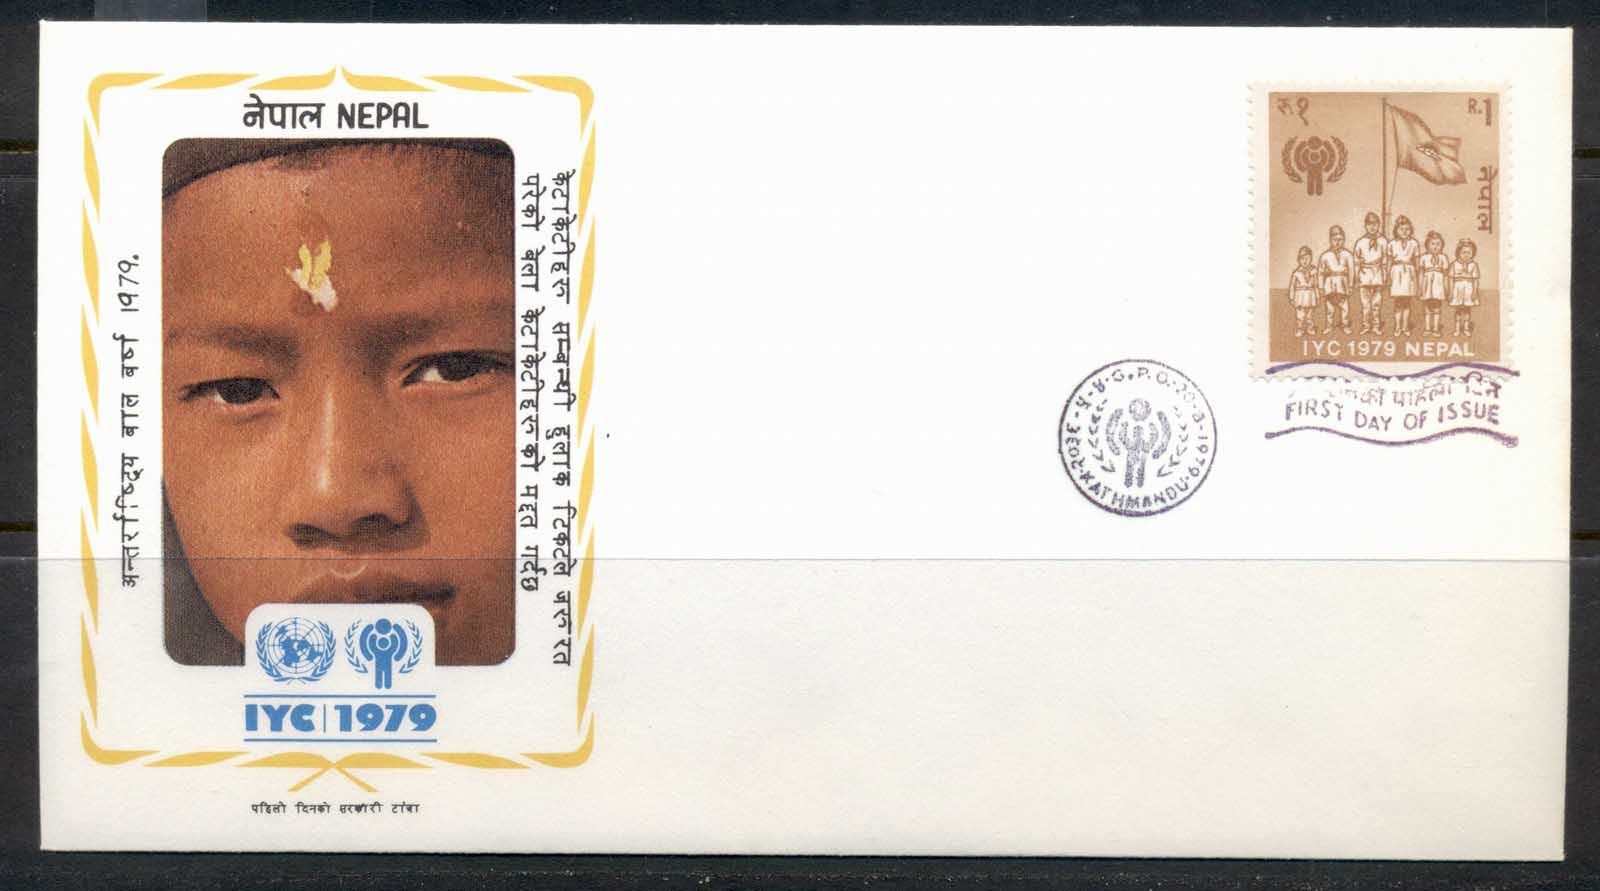 Nepal 1979 IYC International year of the Child FDC